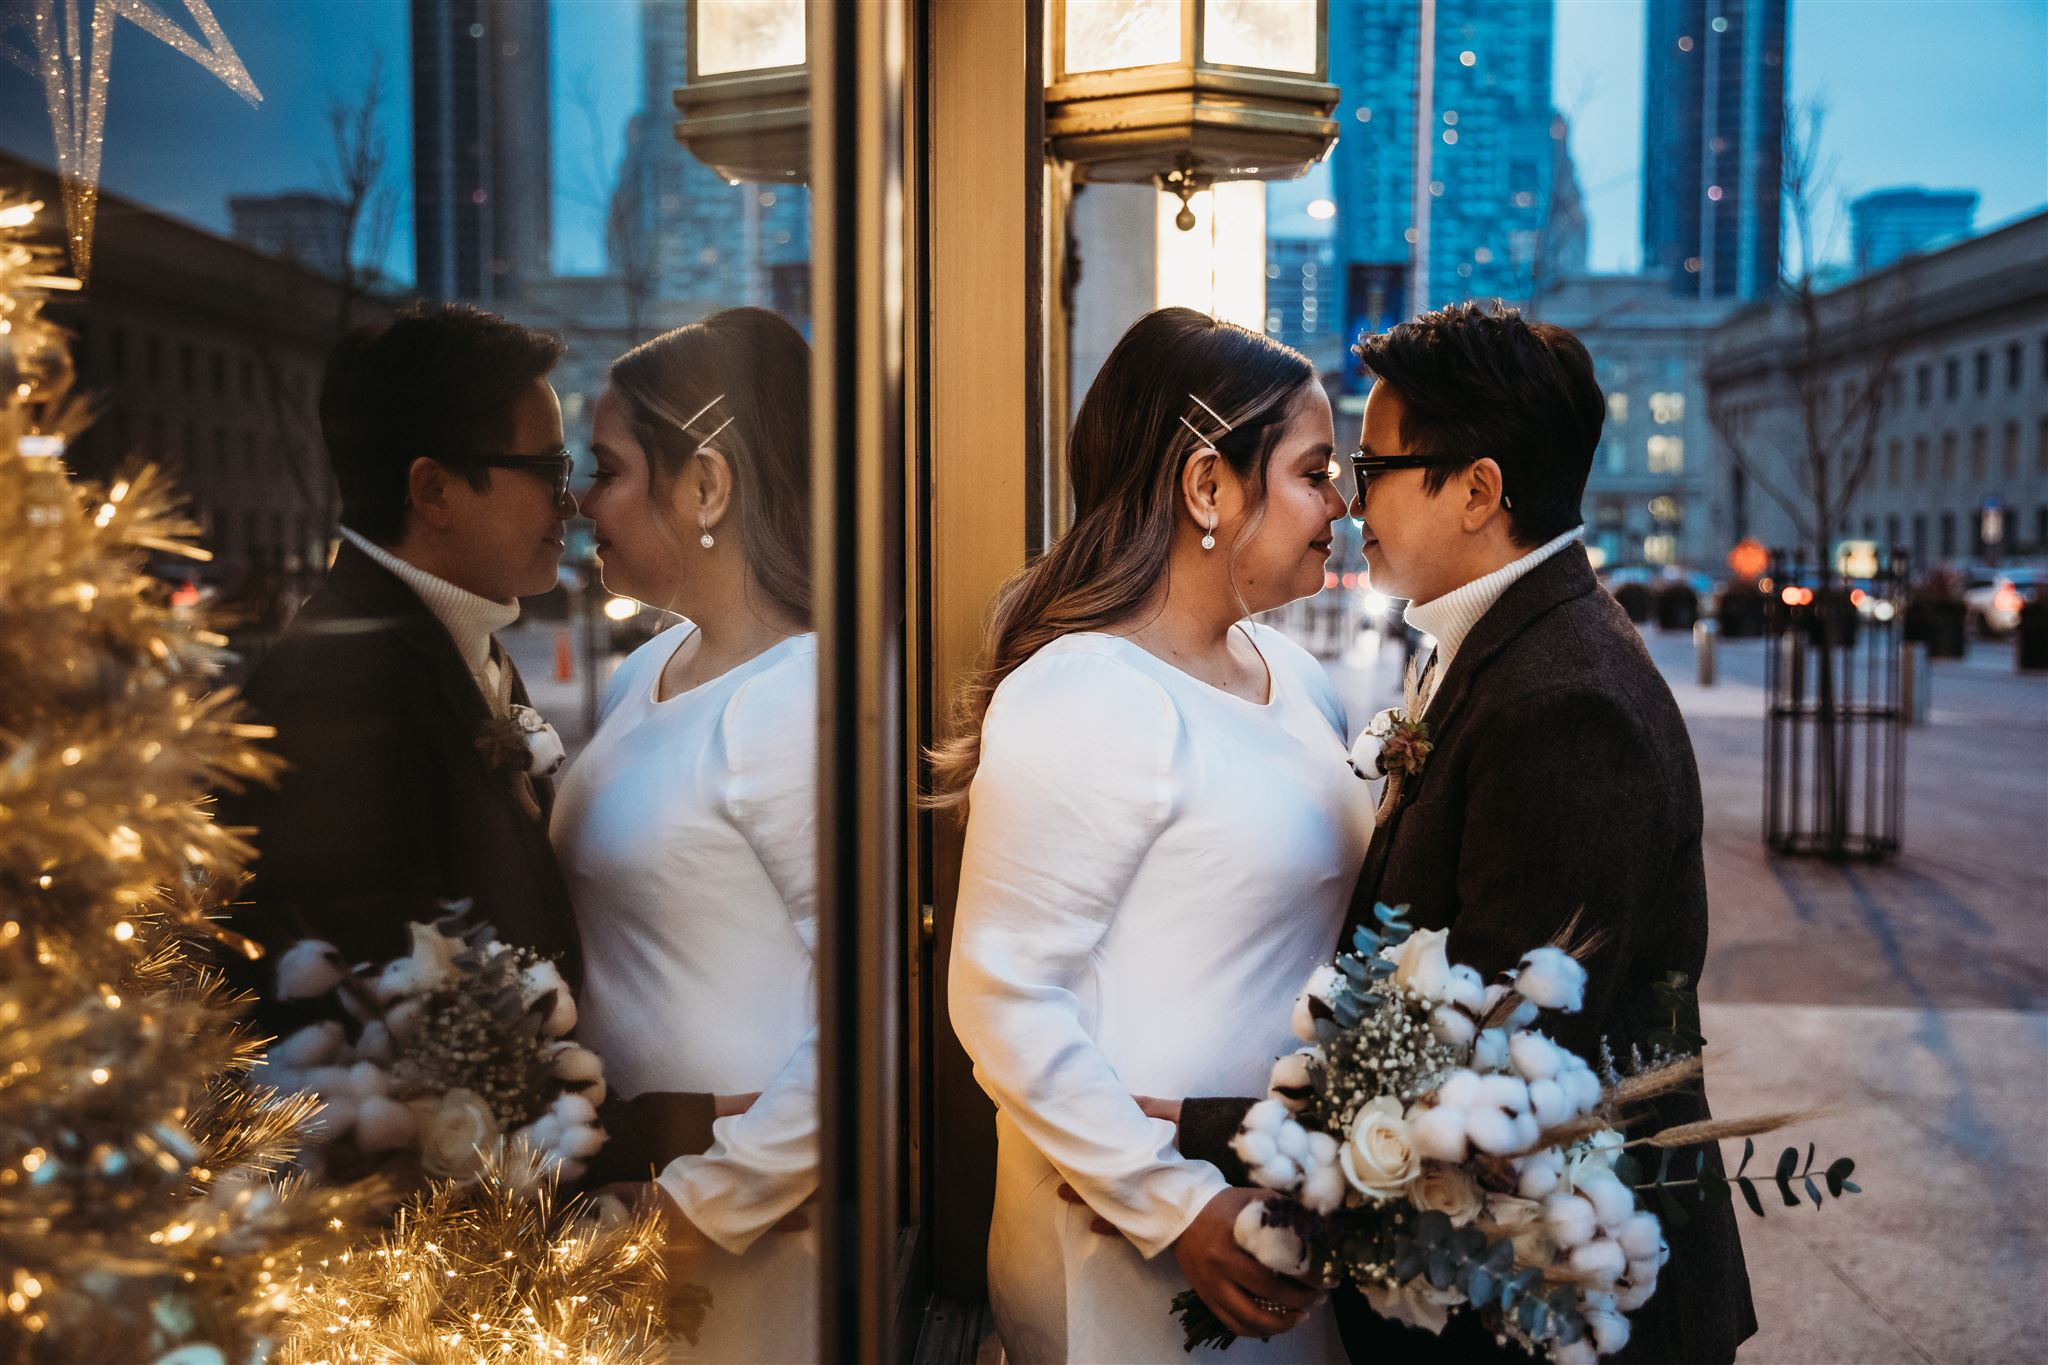 performative allyship in the wedding industry